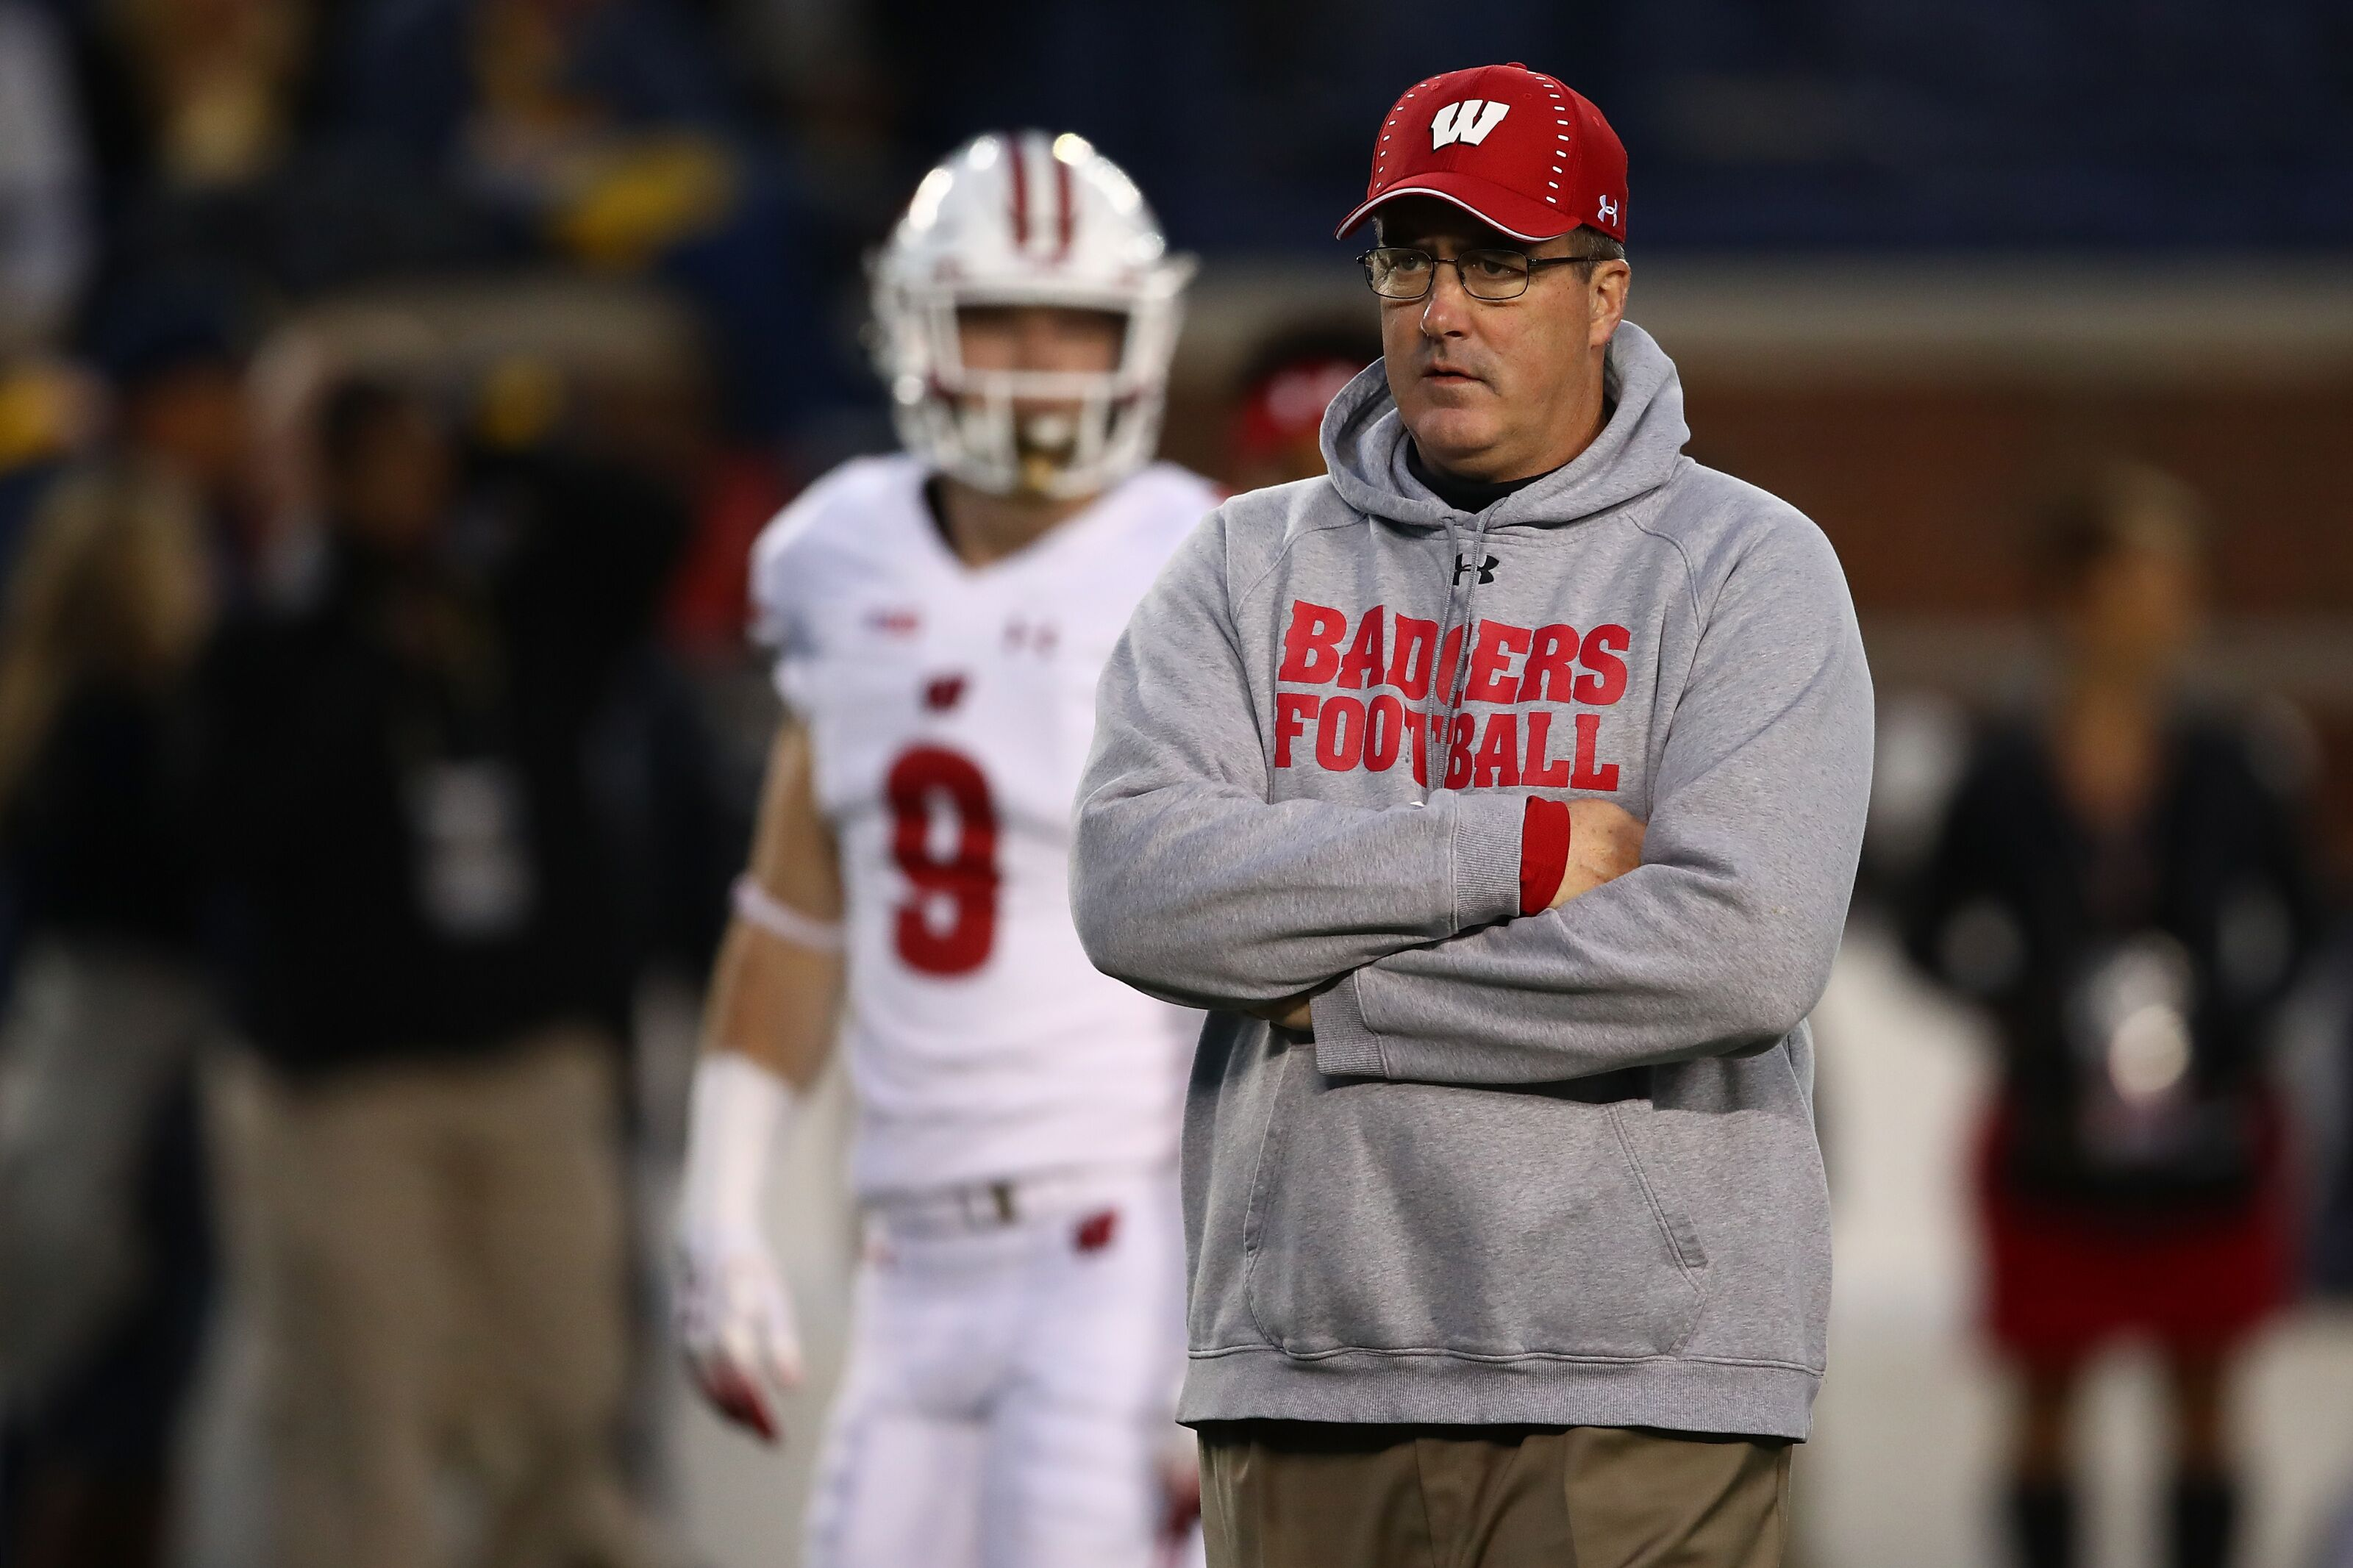 What's wrong with Wisconsin Football?